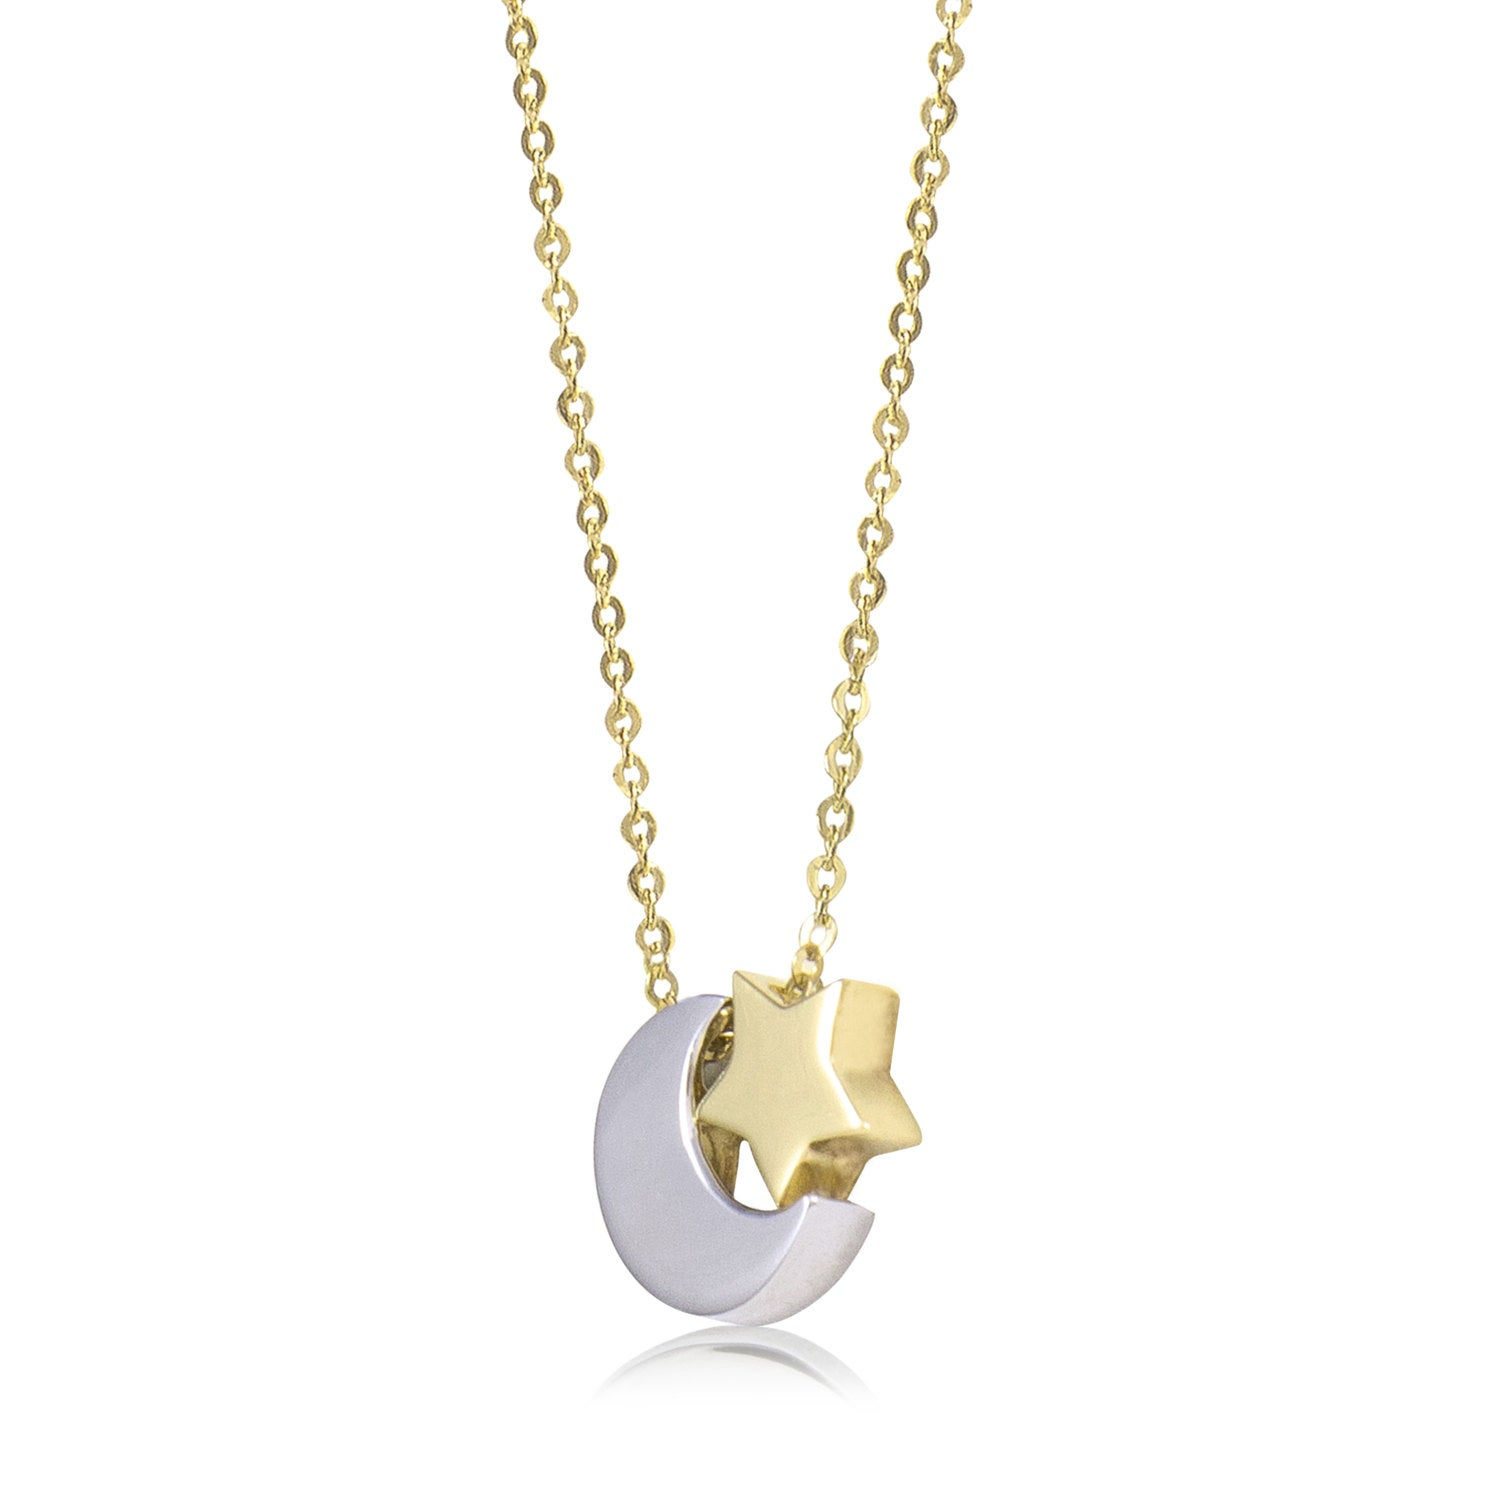 14k Solid Yellow White Gold Moon Star Necklace Pendant Rolo Chain Within Current Polished Moon & Star Pendant Necklaces (View 18 of 25)